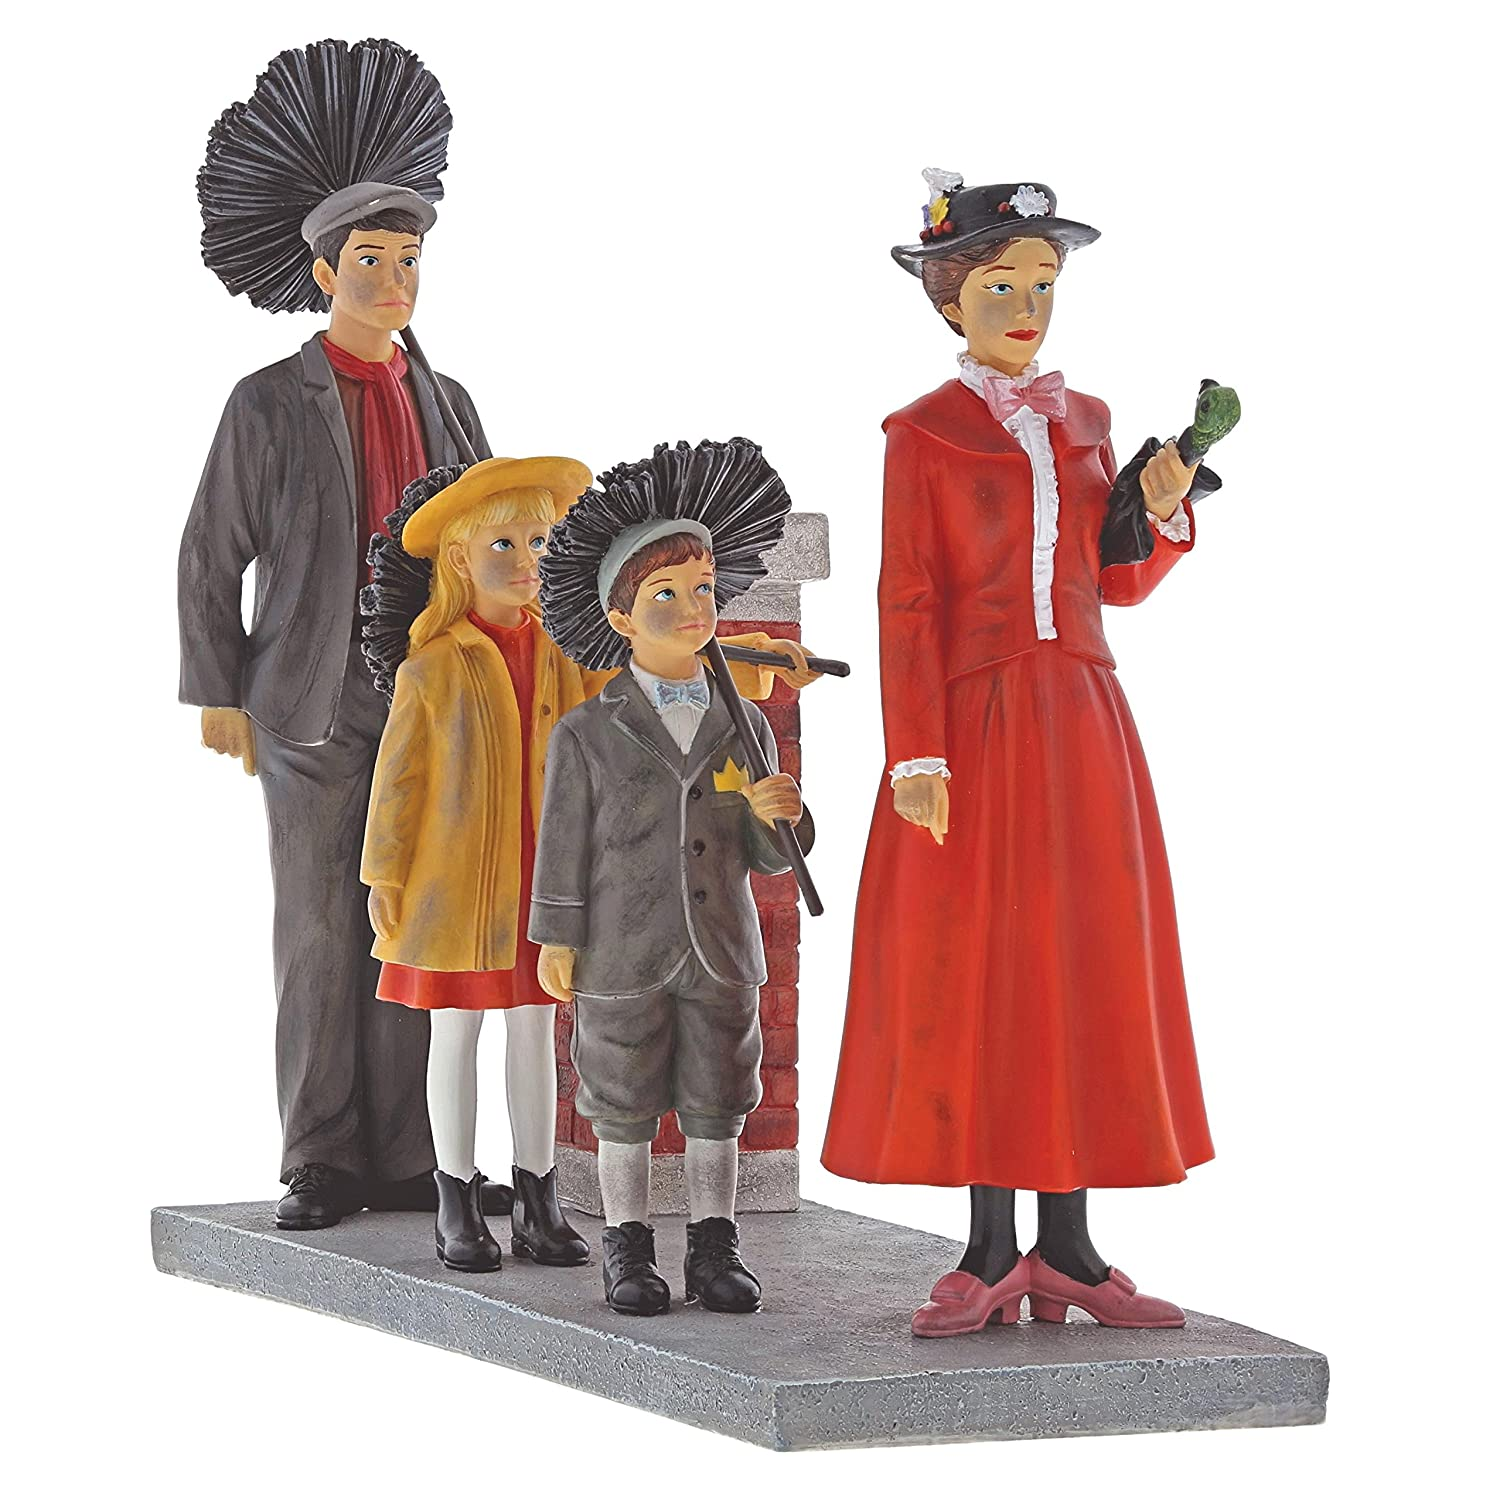 Enchanting Disney Step in Time - Mary Poppins Poppins Poppins Figur f26ac2